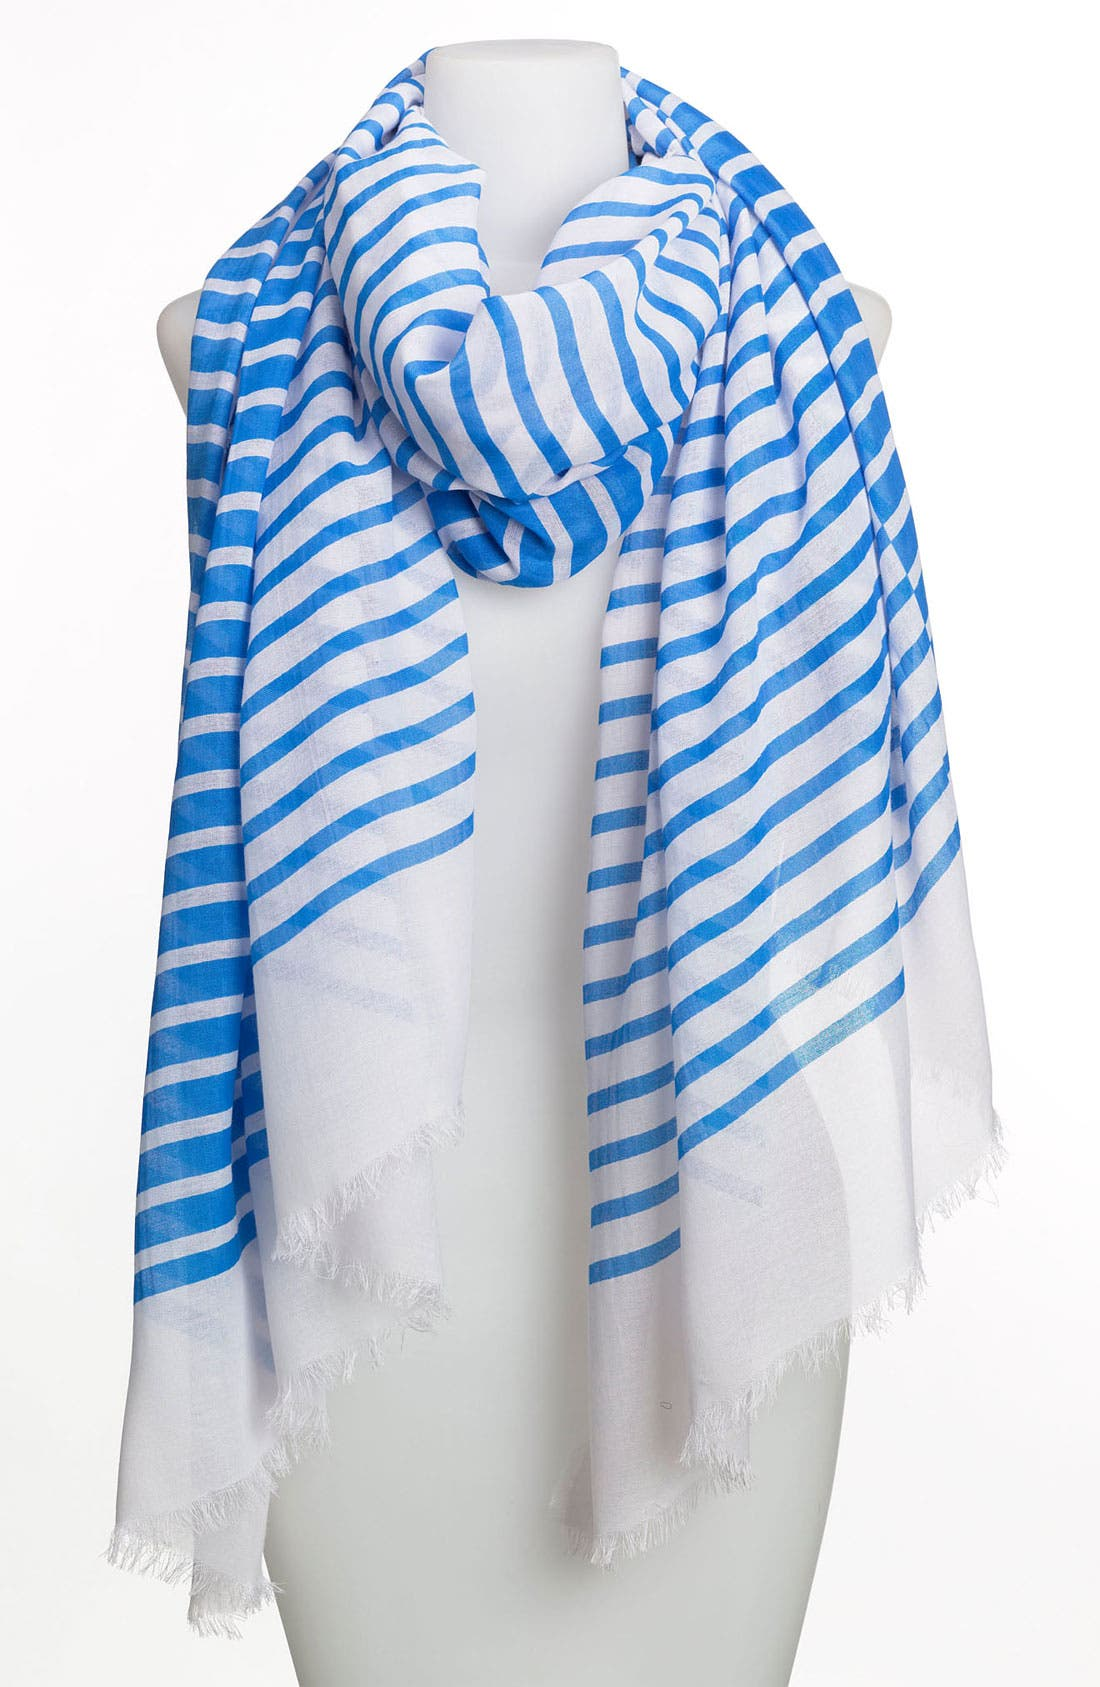 Alternate Image 1 Selected - Steve Madden 'Double Take' Scarf